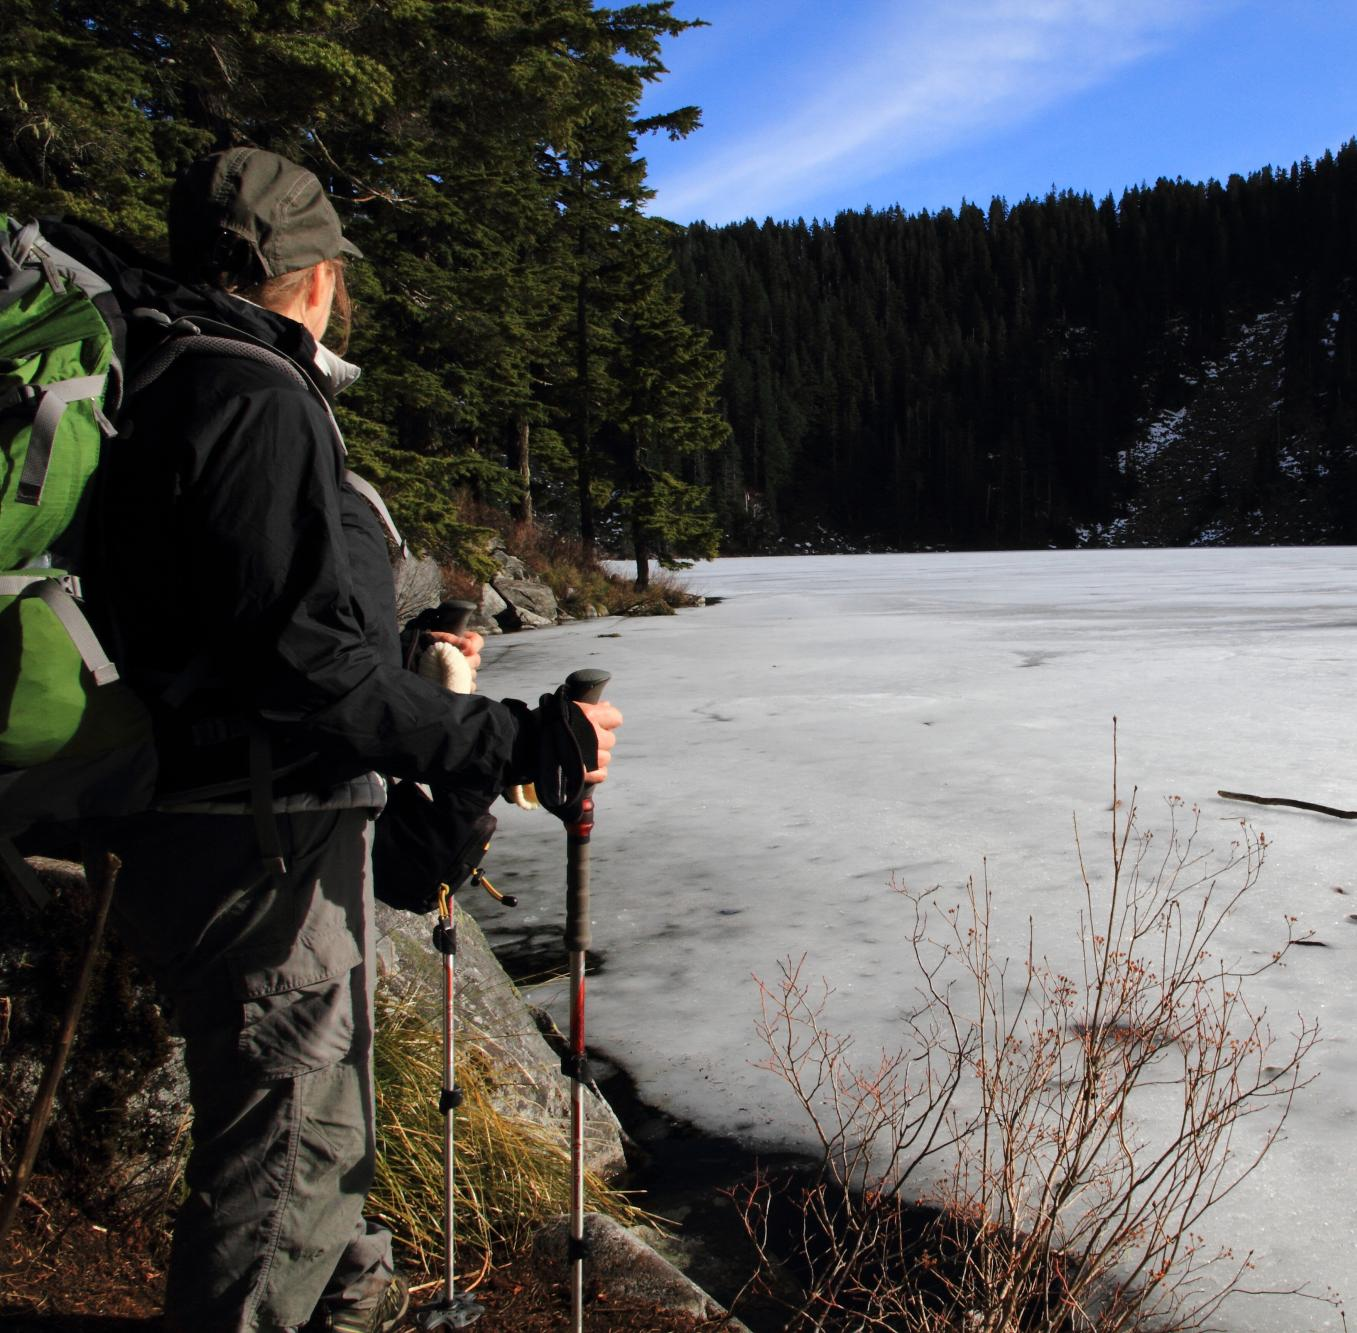 Female hiker gazing at frozen lake